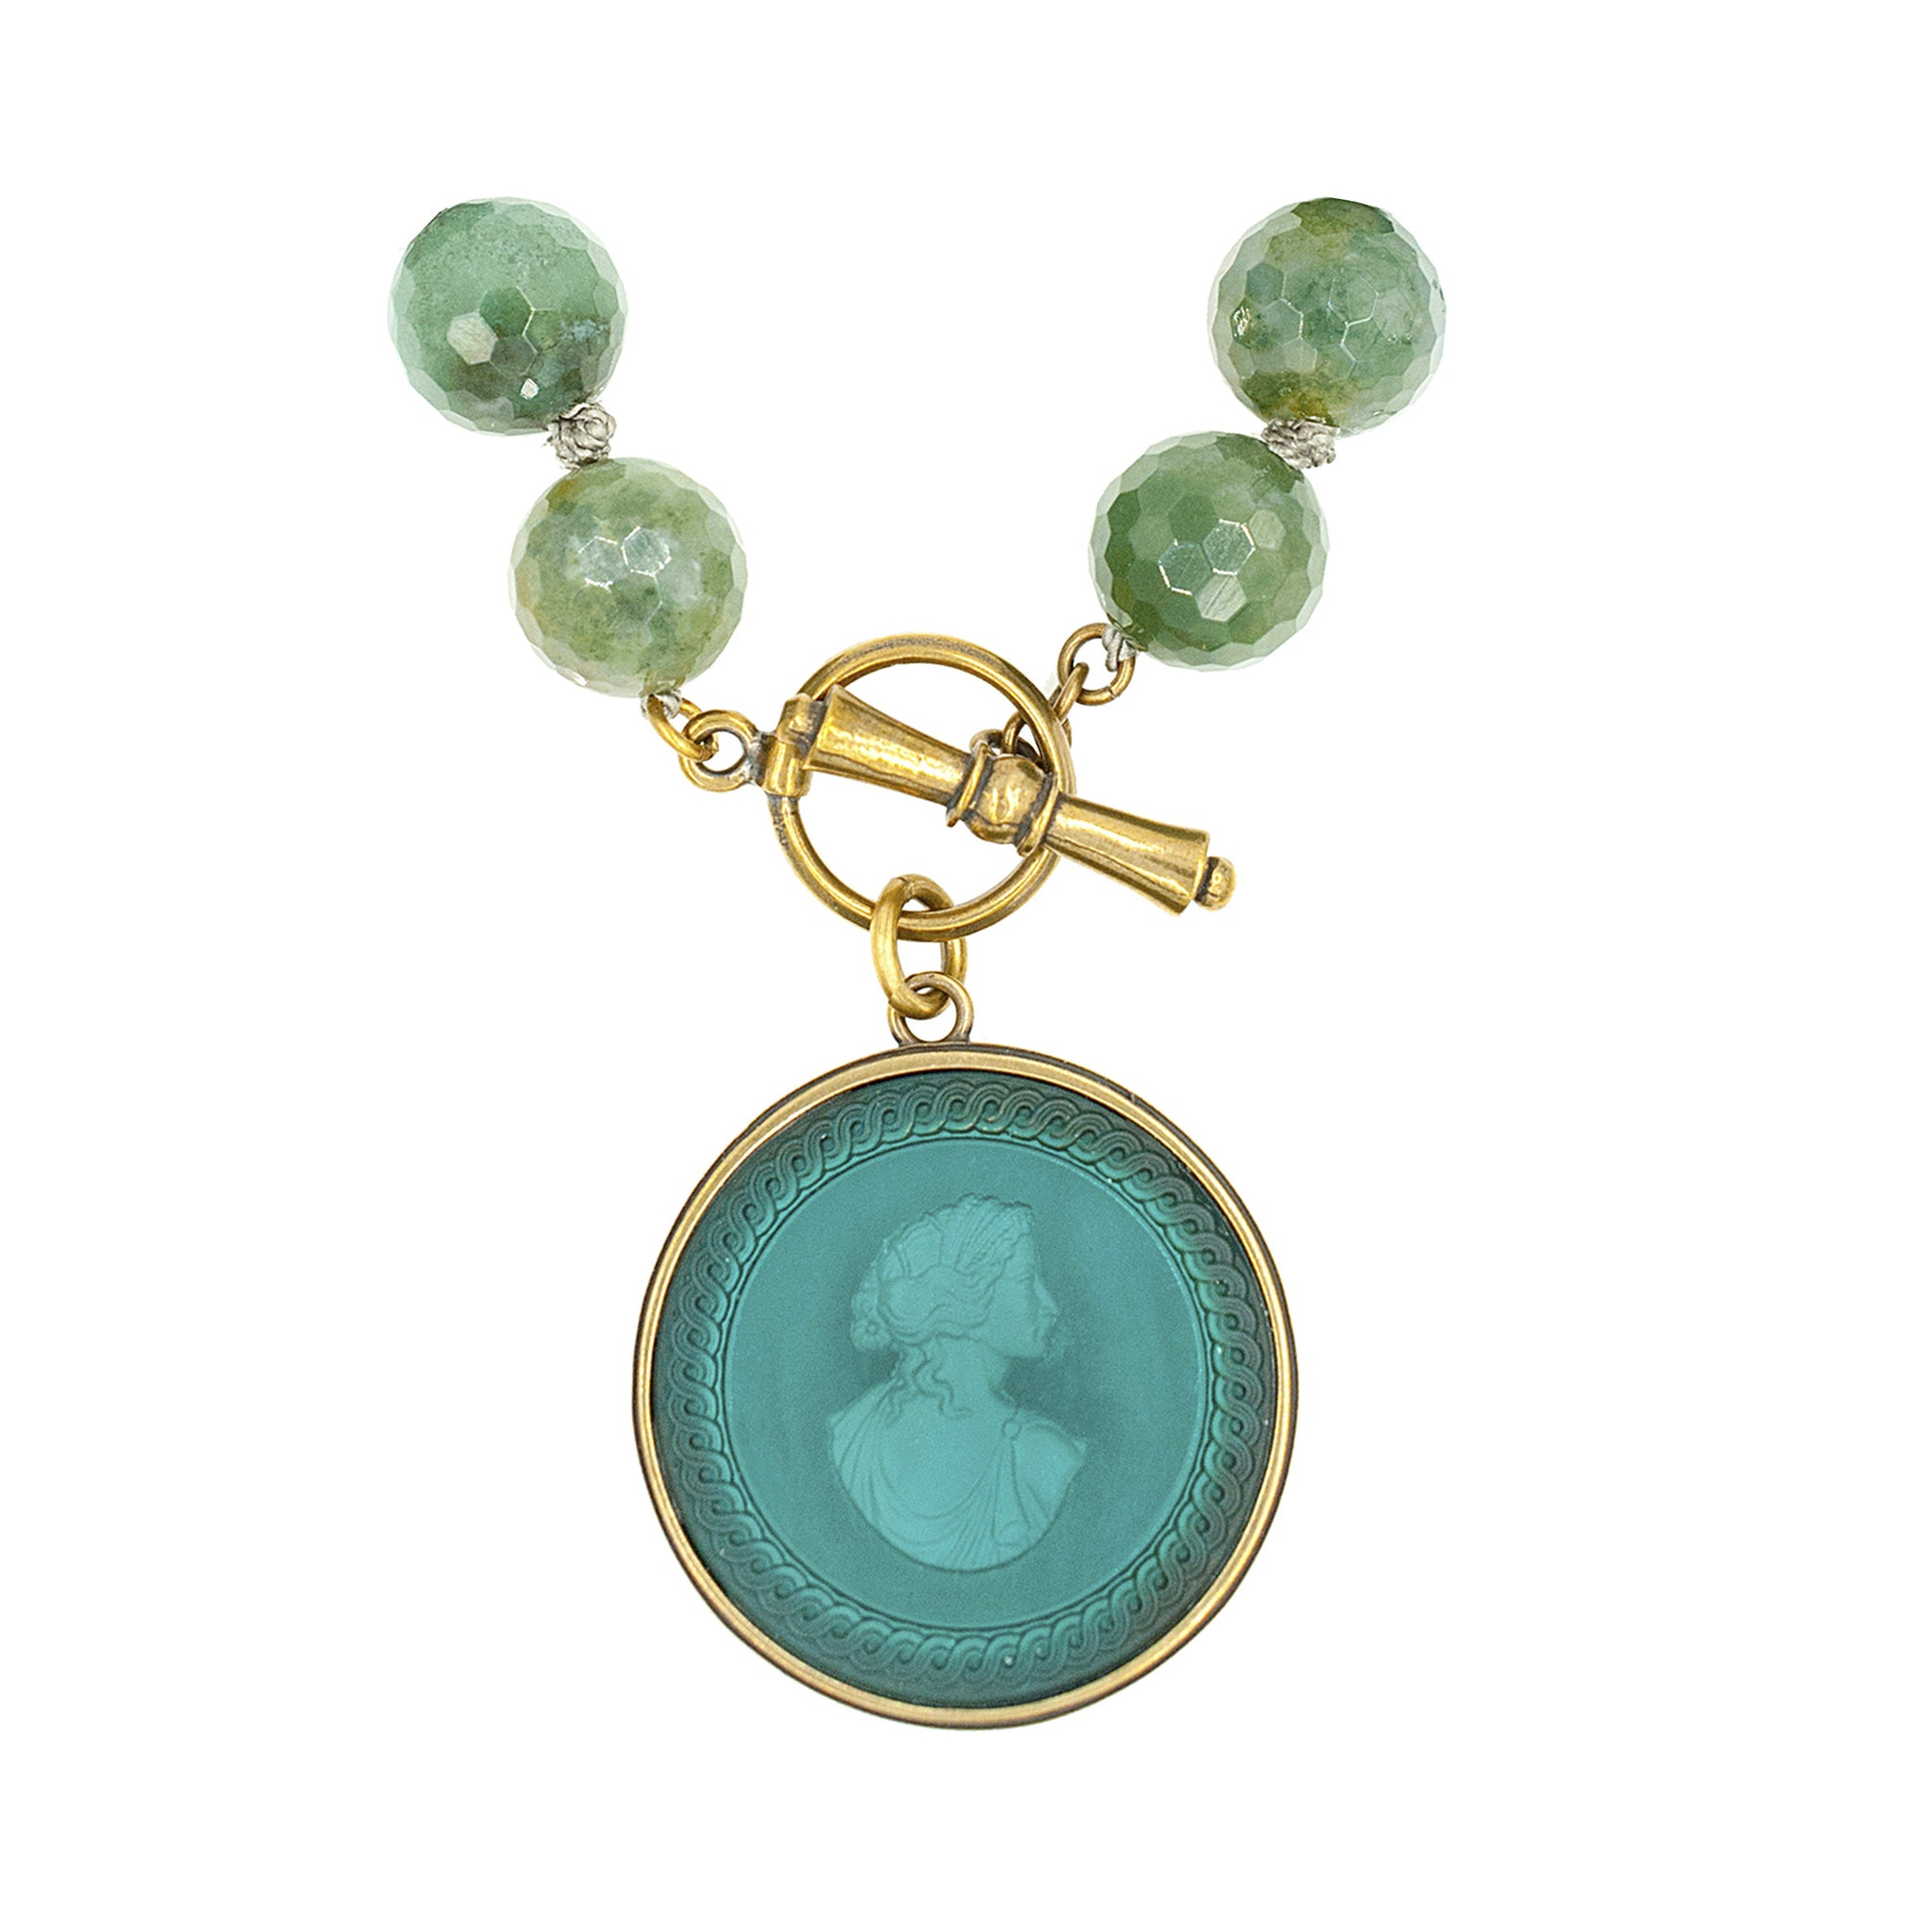 pearls rubies glass while pendant meribella jewelry necklace shell cast designs intaglio past venetian teal shop